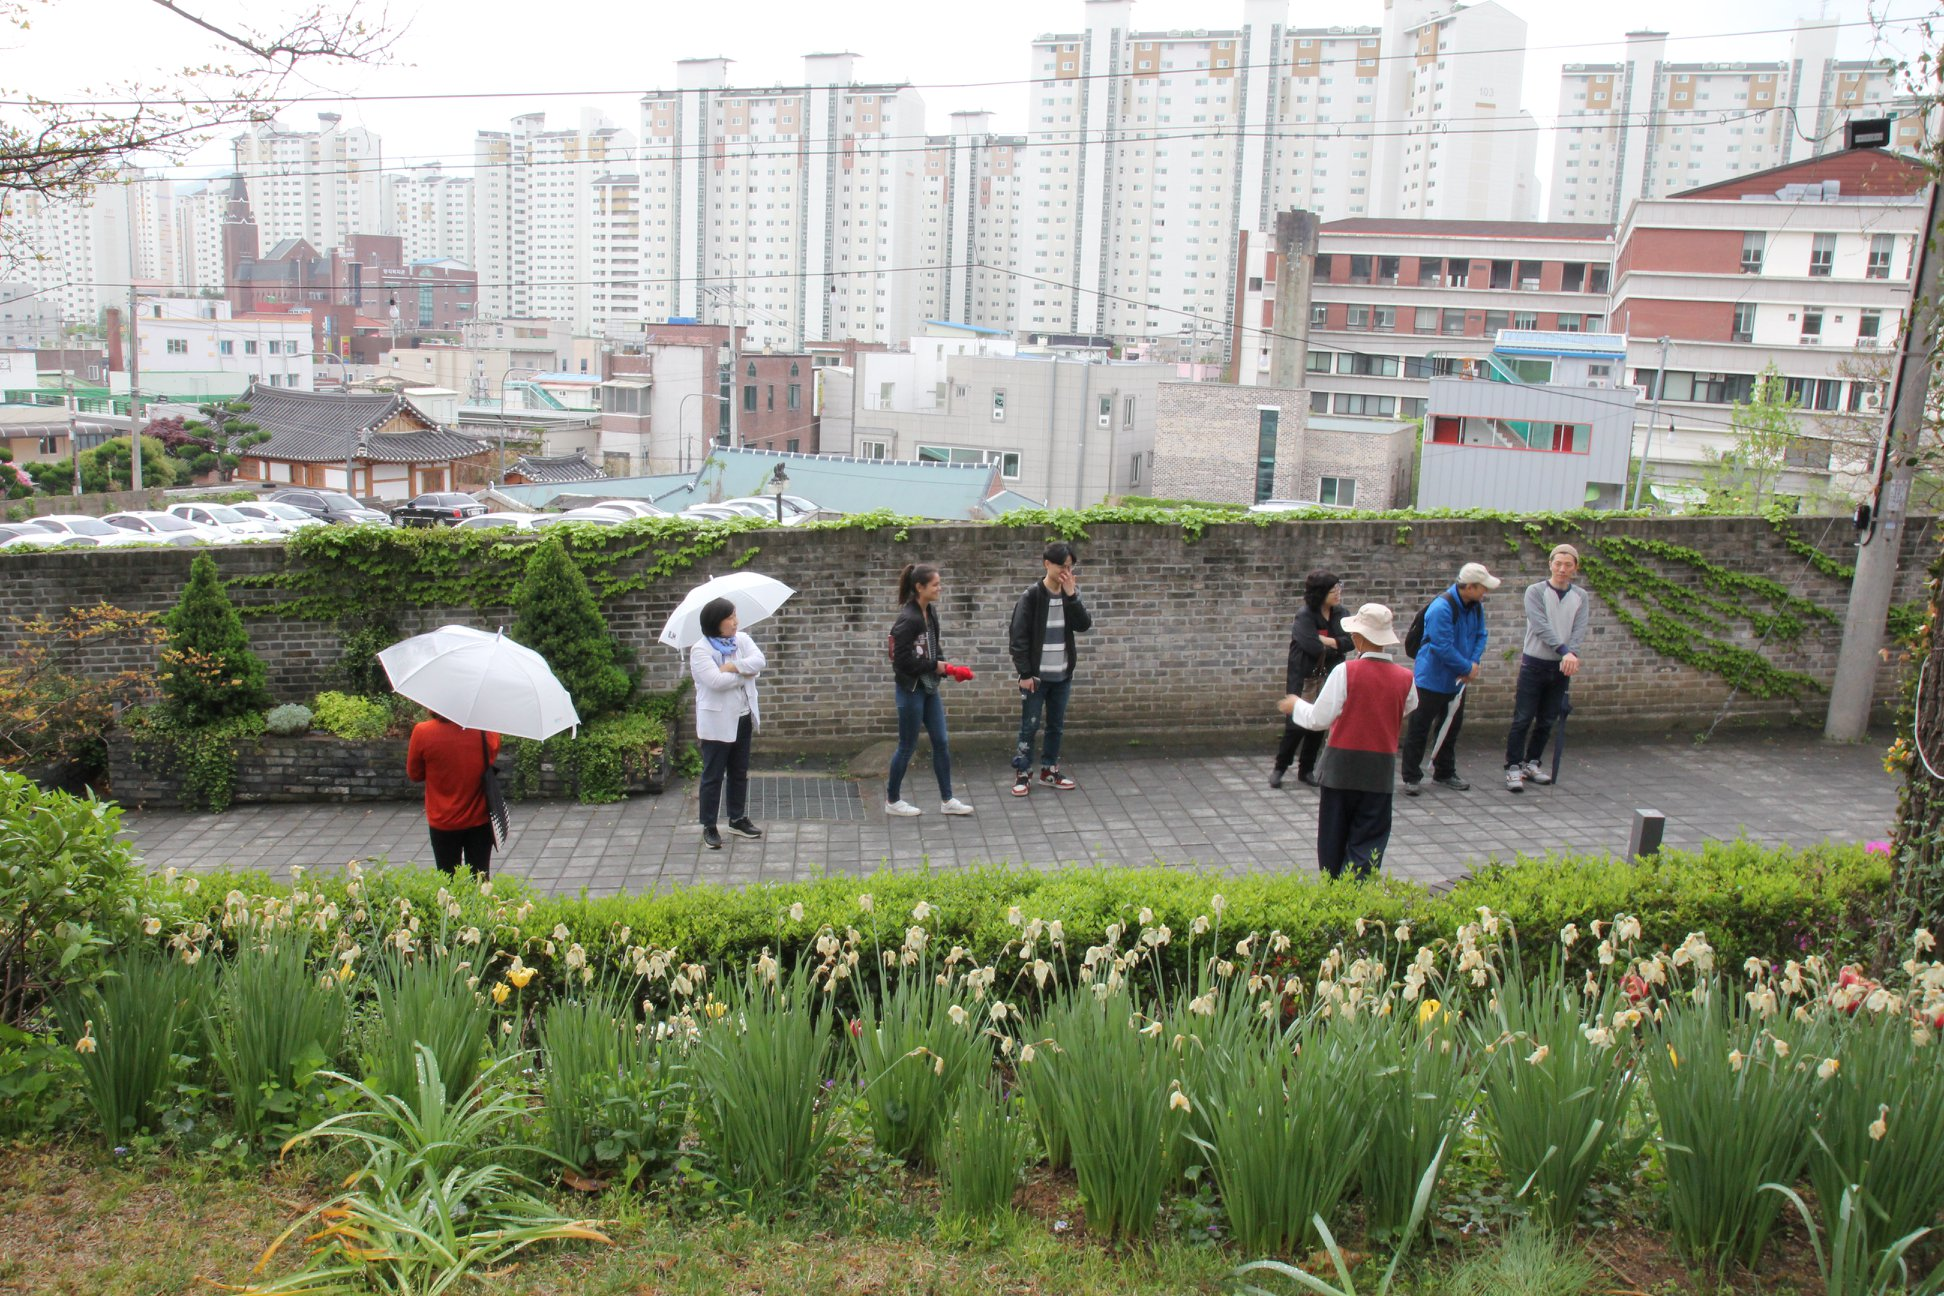 People with umbrellas stand in front of brick wall with plants in foreground and city skyline behind them